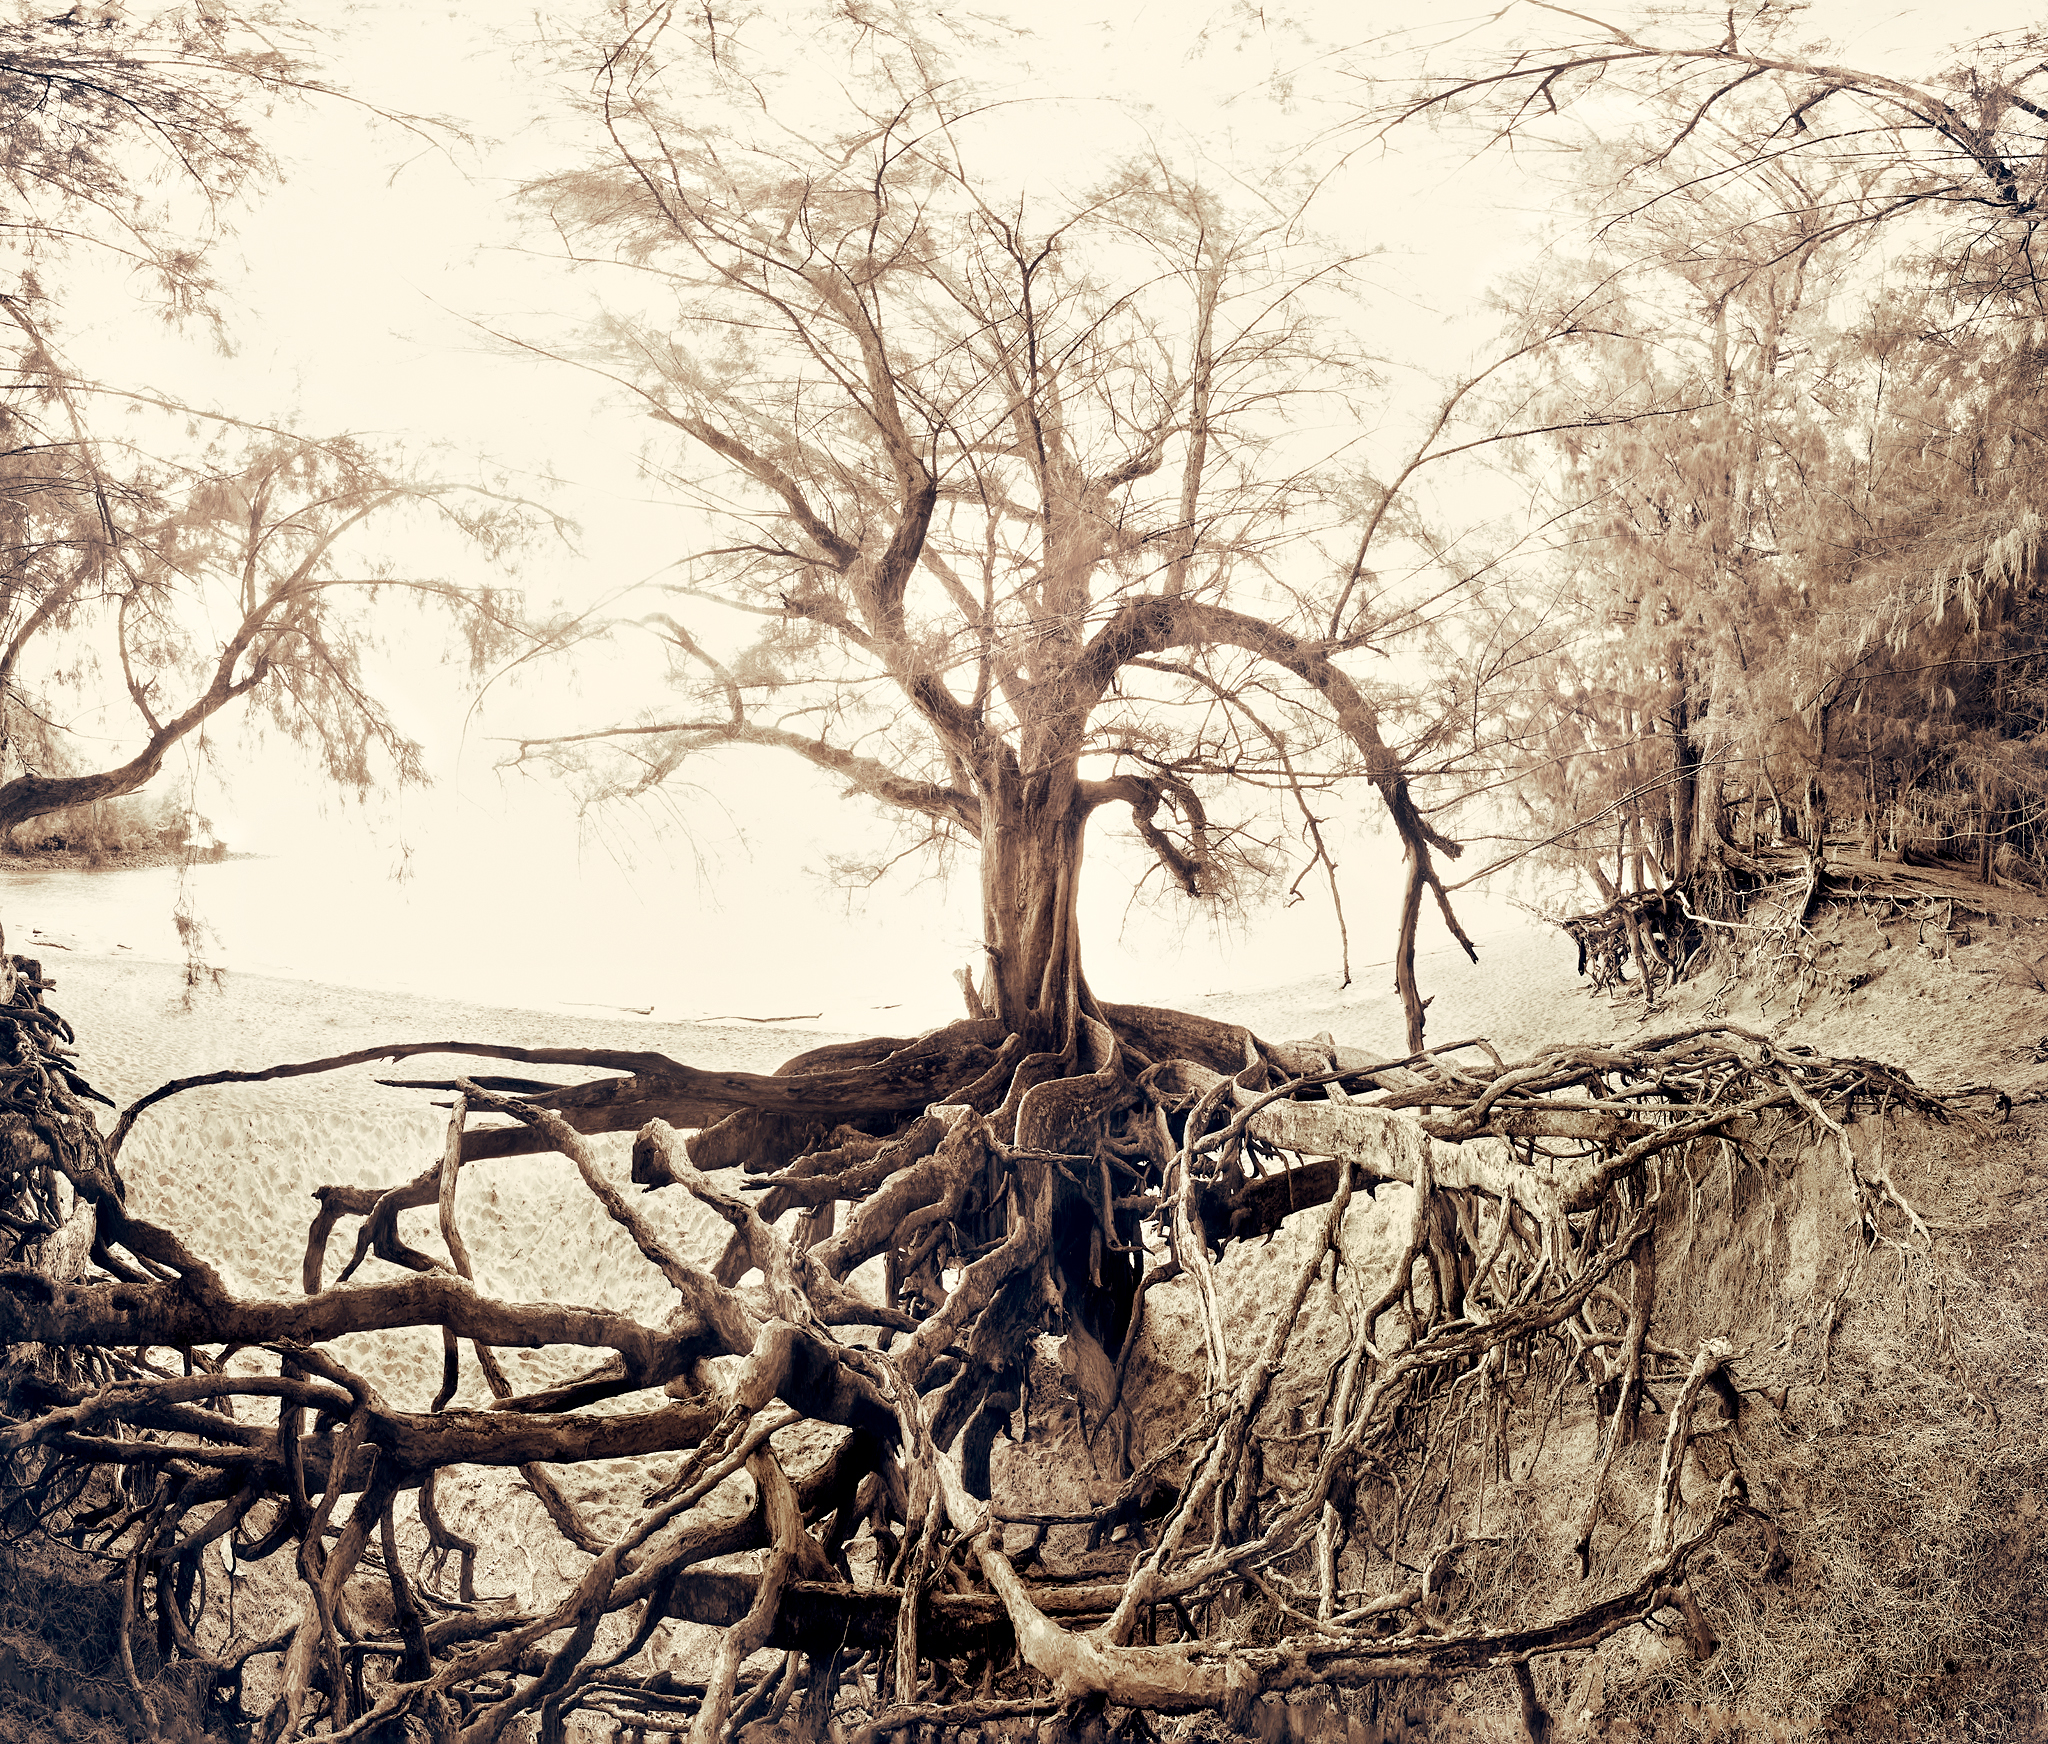 Banyan Tree and Roots by Peter Adams.